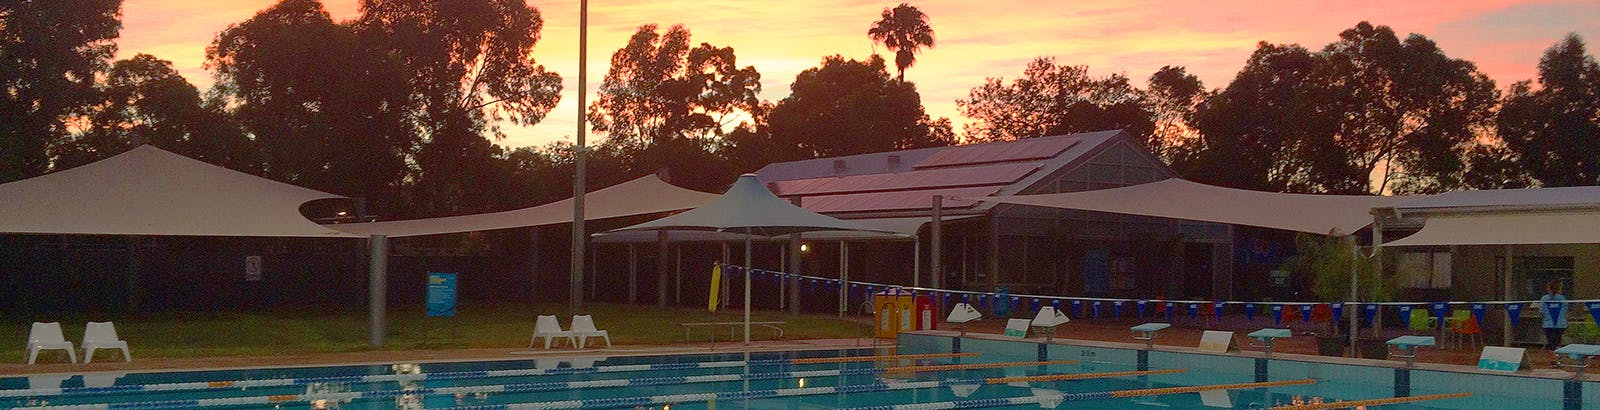 Sunrise at the Unley Swimming Centre